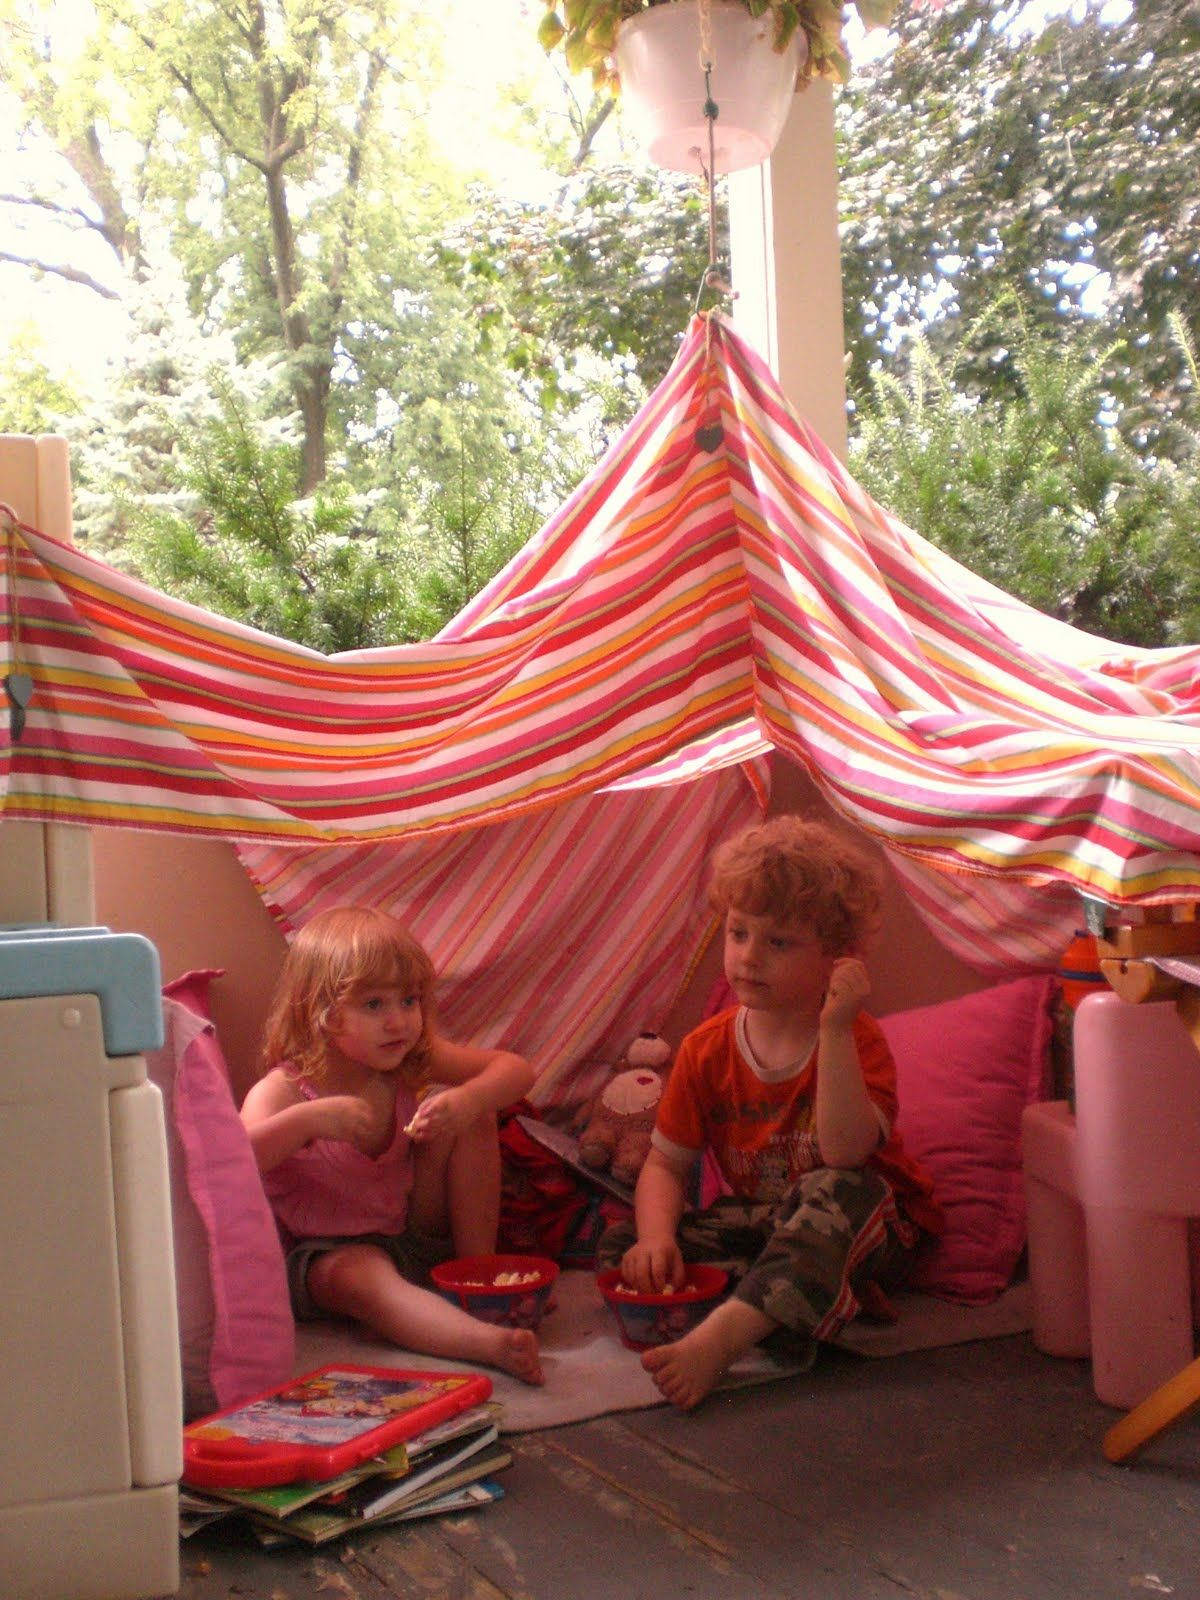 Park Art|My WordPress Blog_How To Build A Tent With Sheets